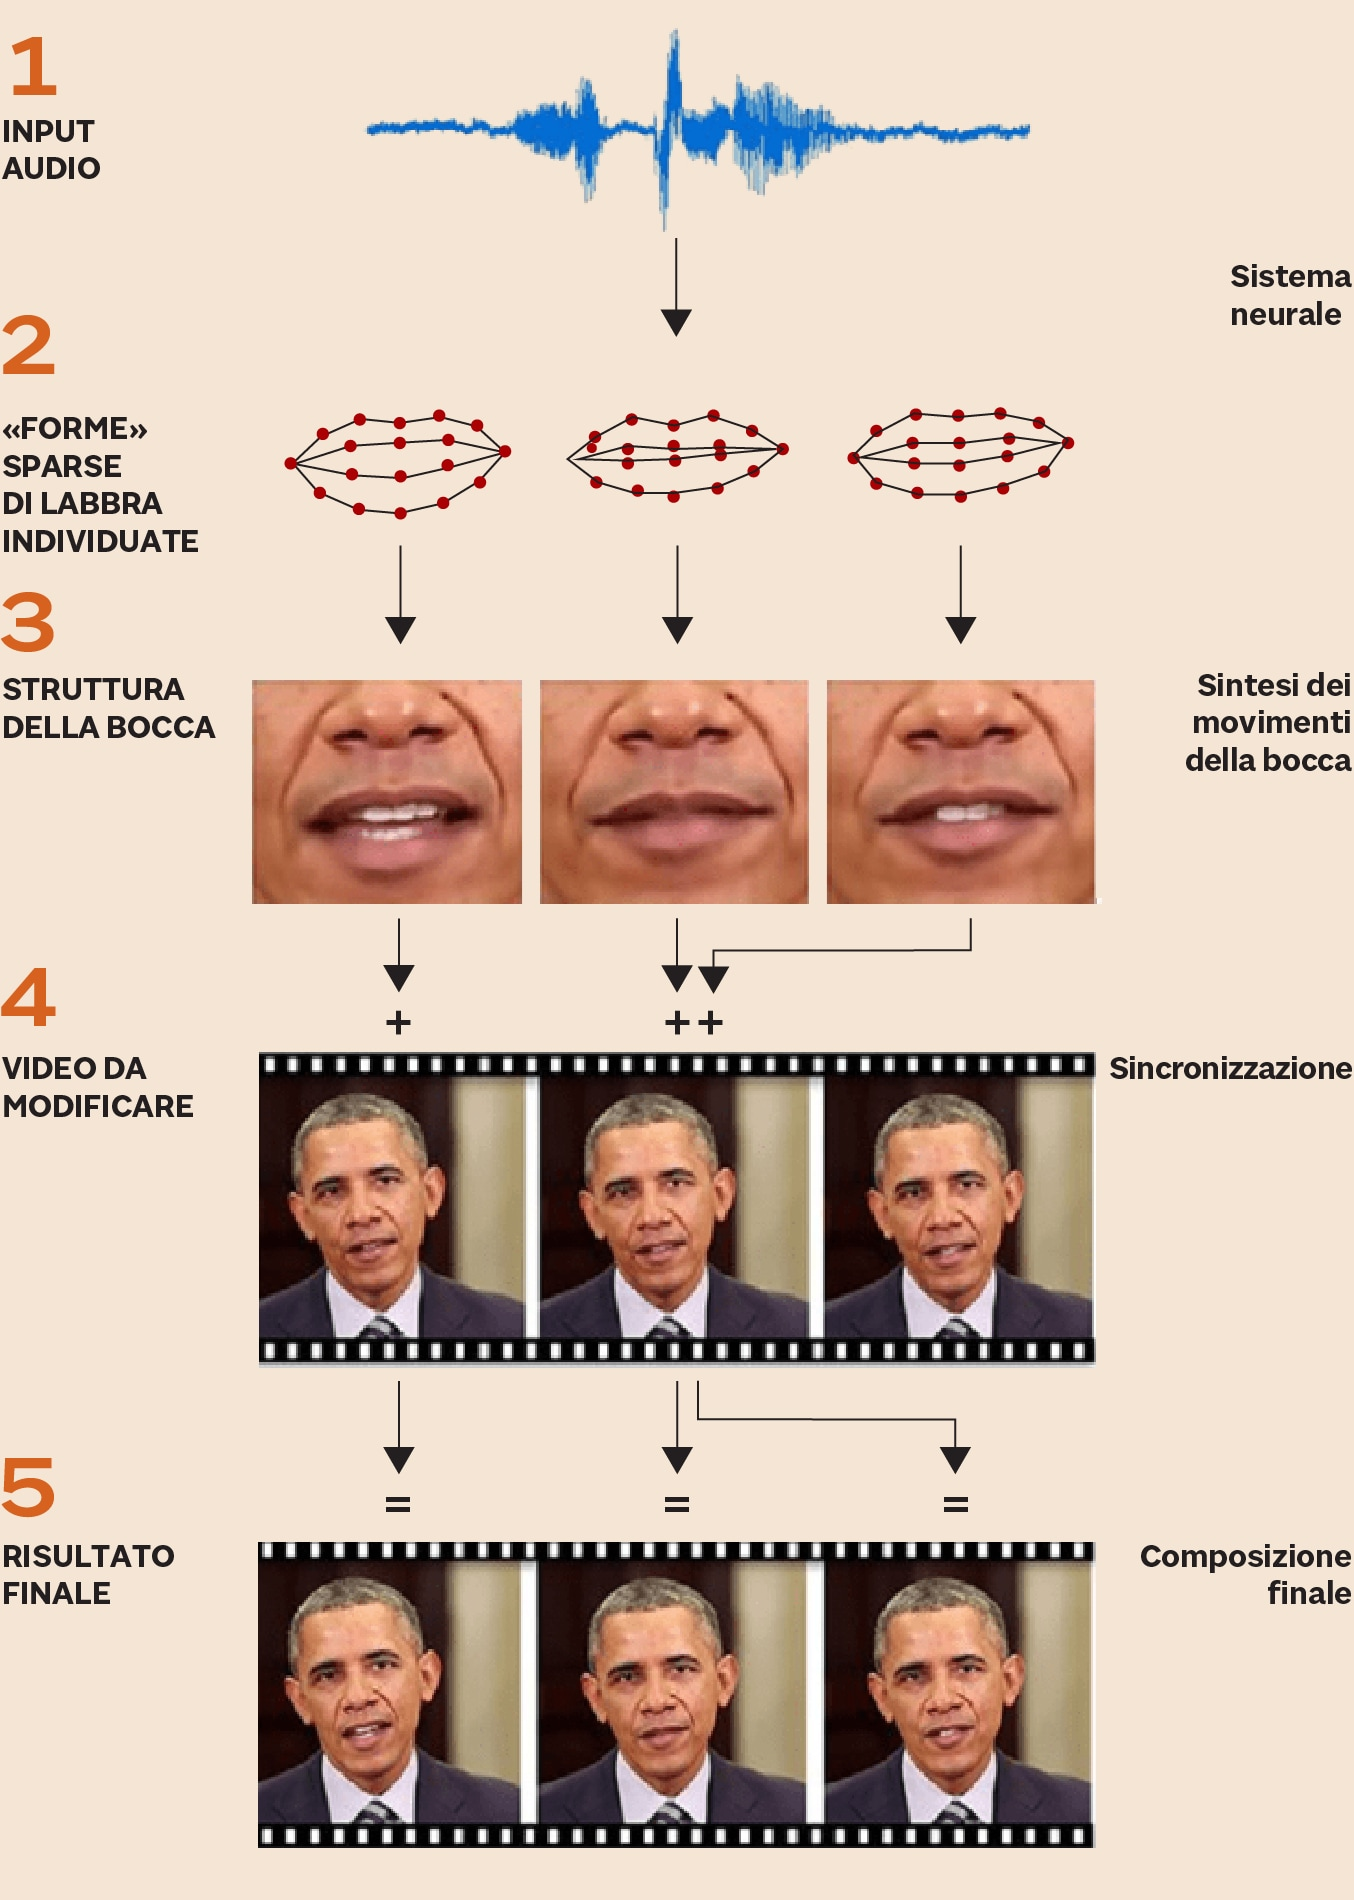 COME SI FALSIFICA UN VIDEO